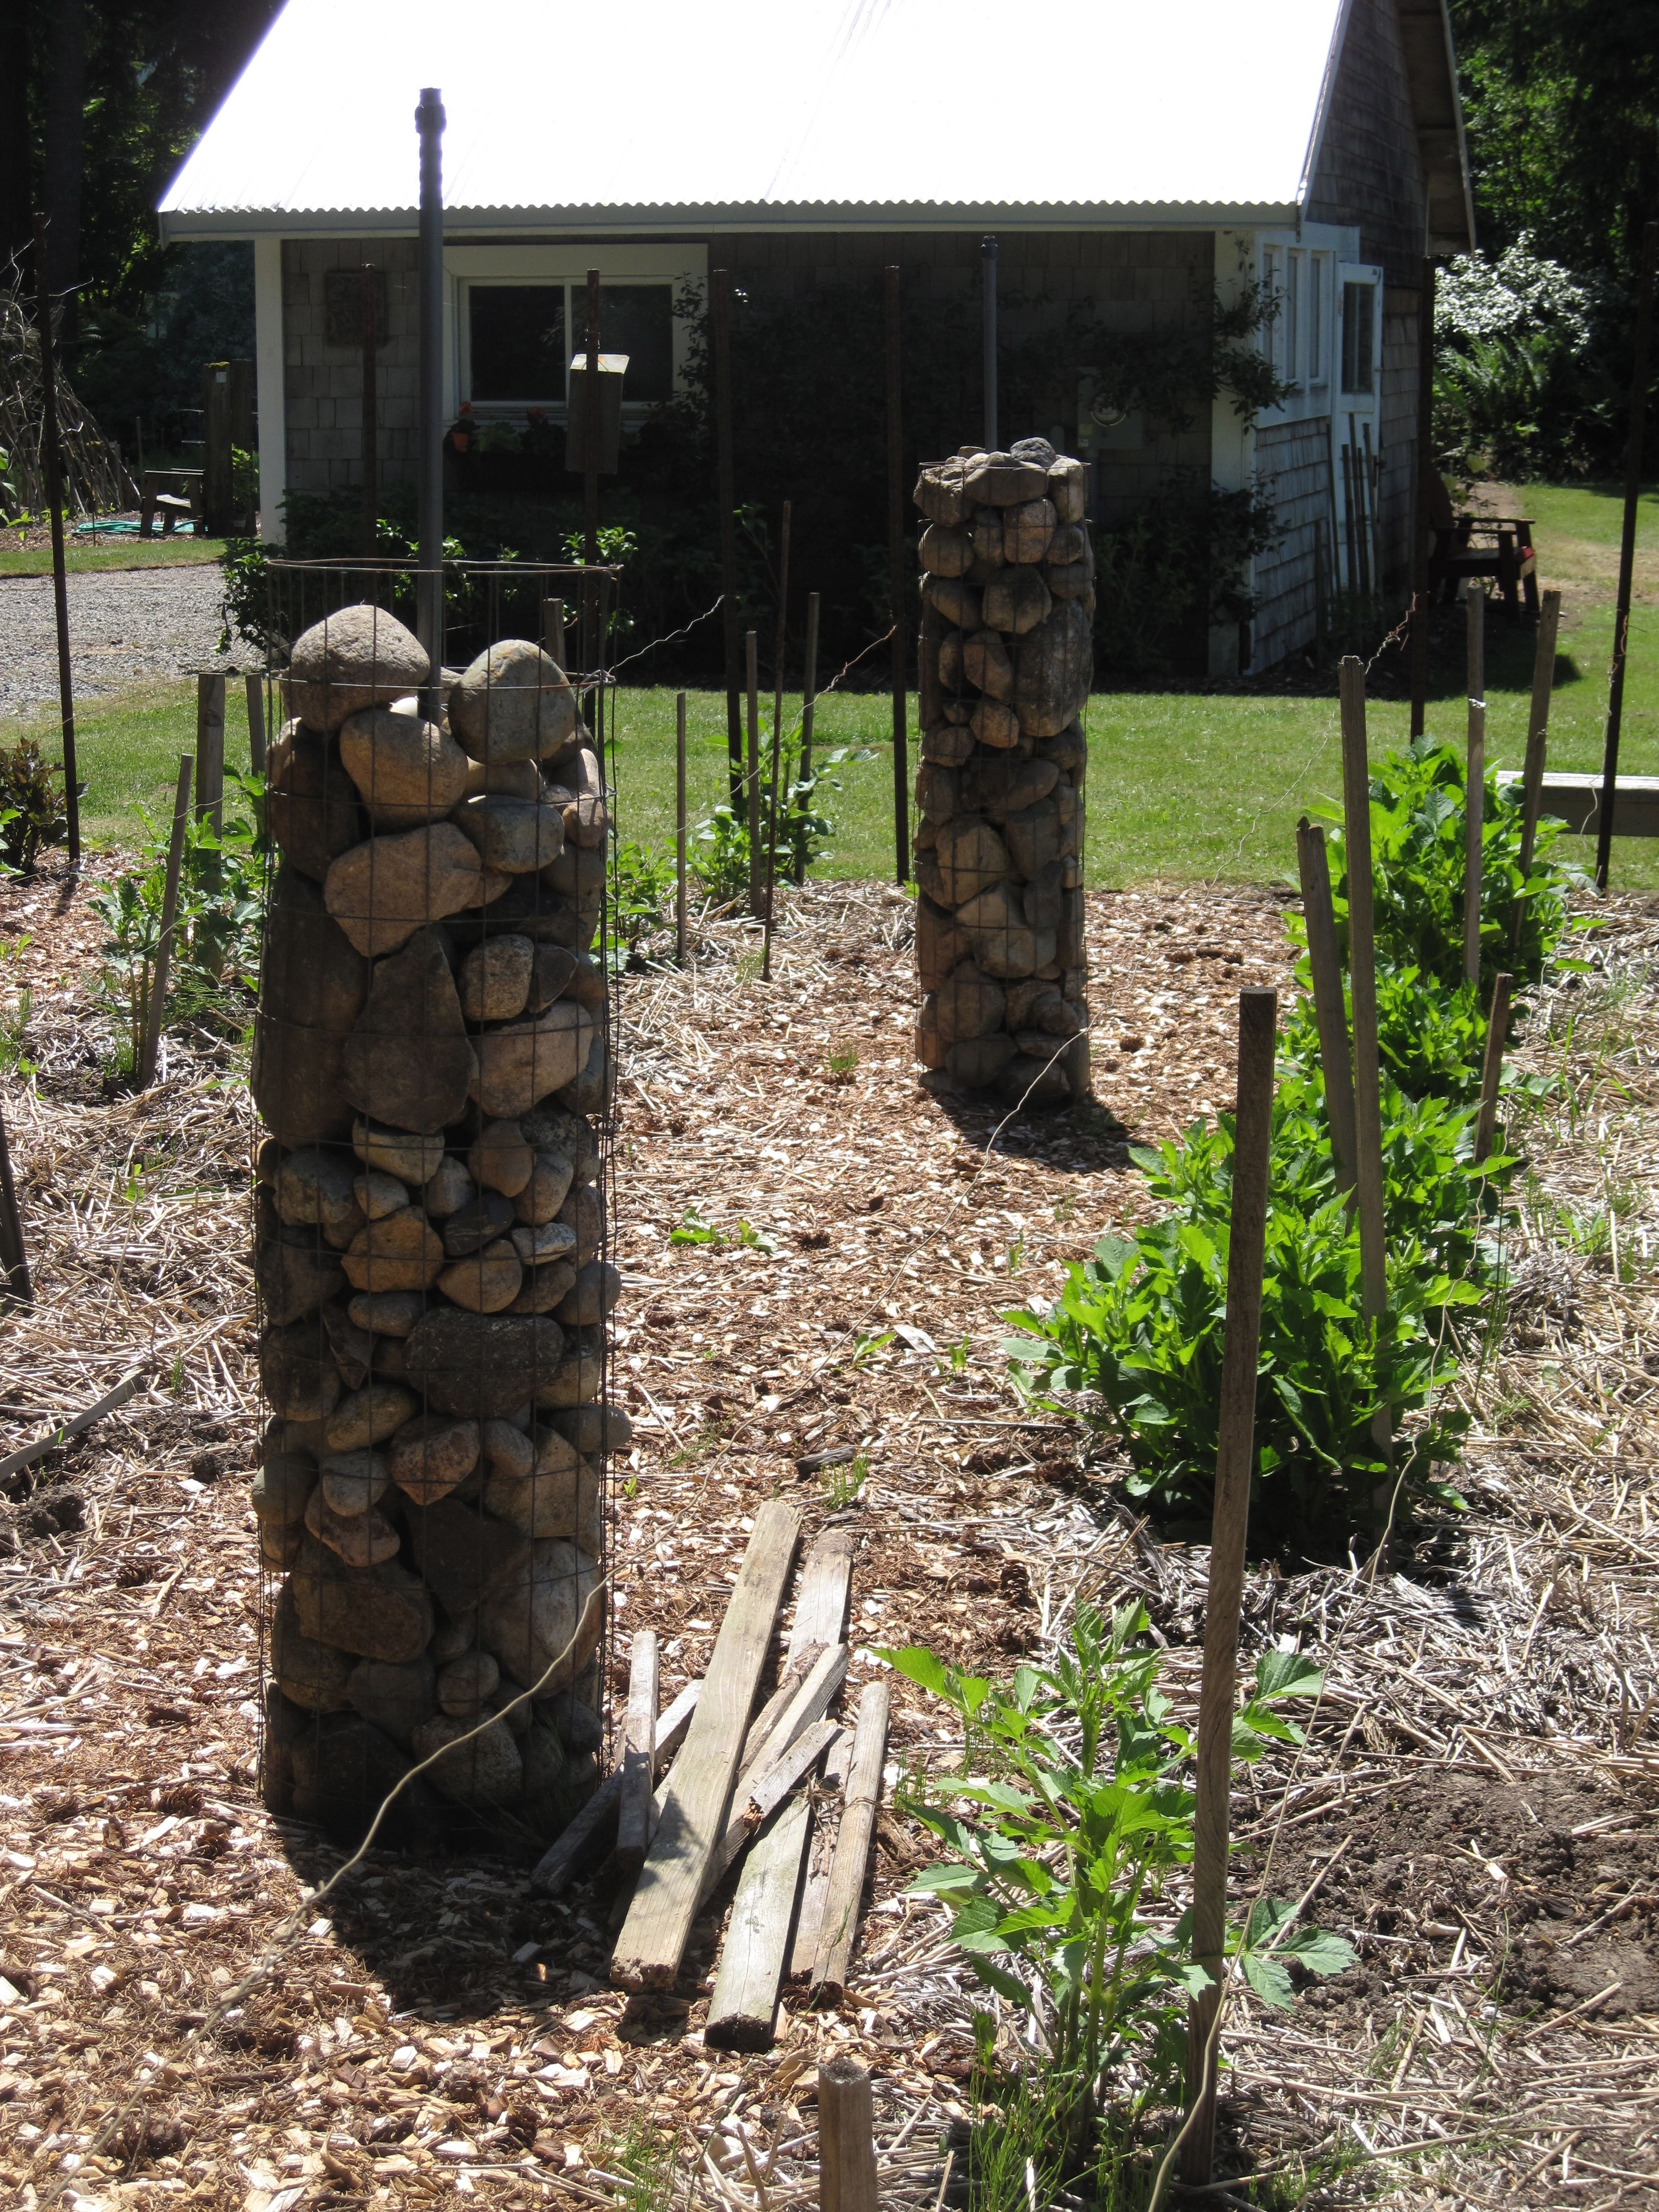 Rock wall drawing rock pillars the wall - Landscaping Ideas With Rocks Corner Fence Fence Pictures Split Rail Fences With Stone Posts For The Home Pinterest Split Rail Fence Rail Fence And